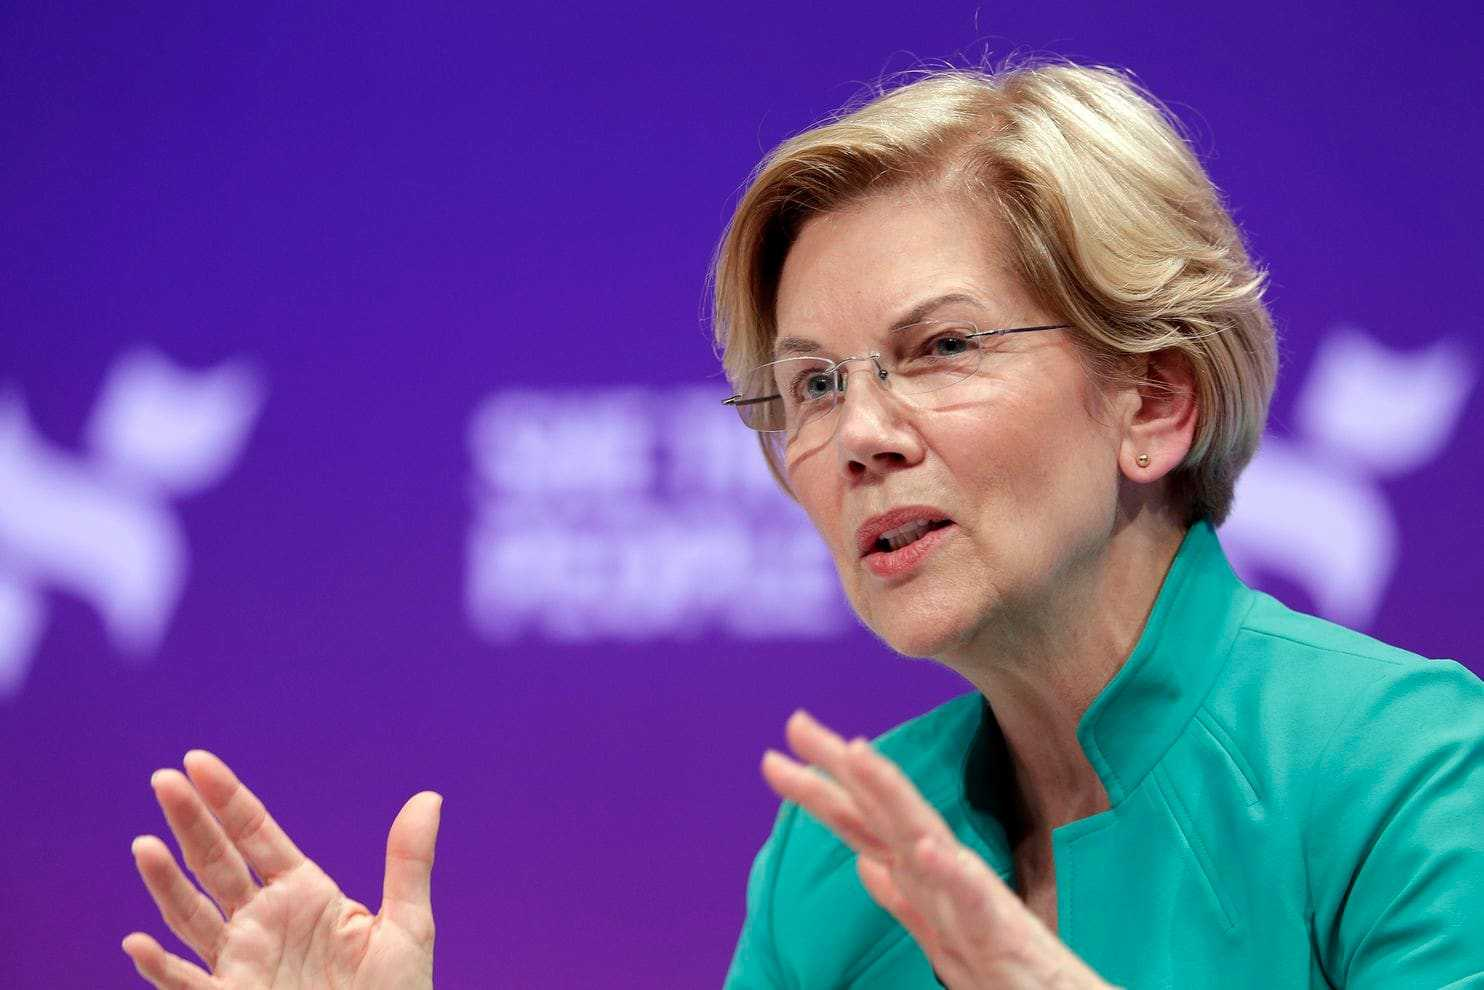 While teaching, Elizabeth Warren worked on more than 50 legal matters, charging as much as $675 an hour